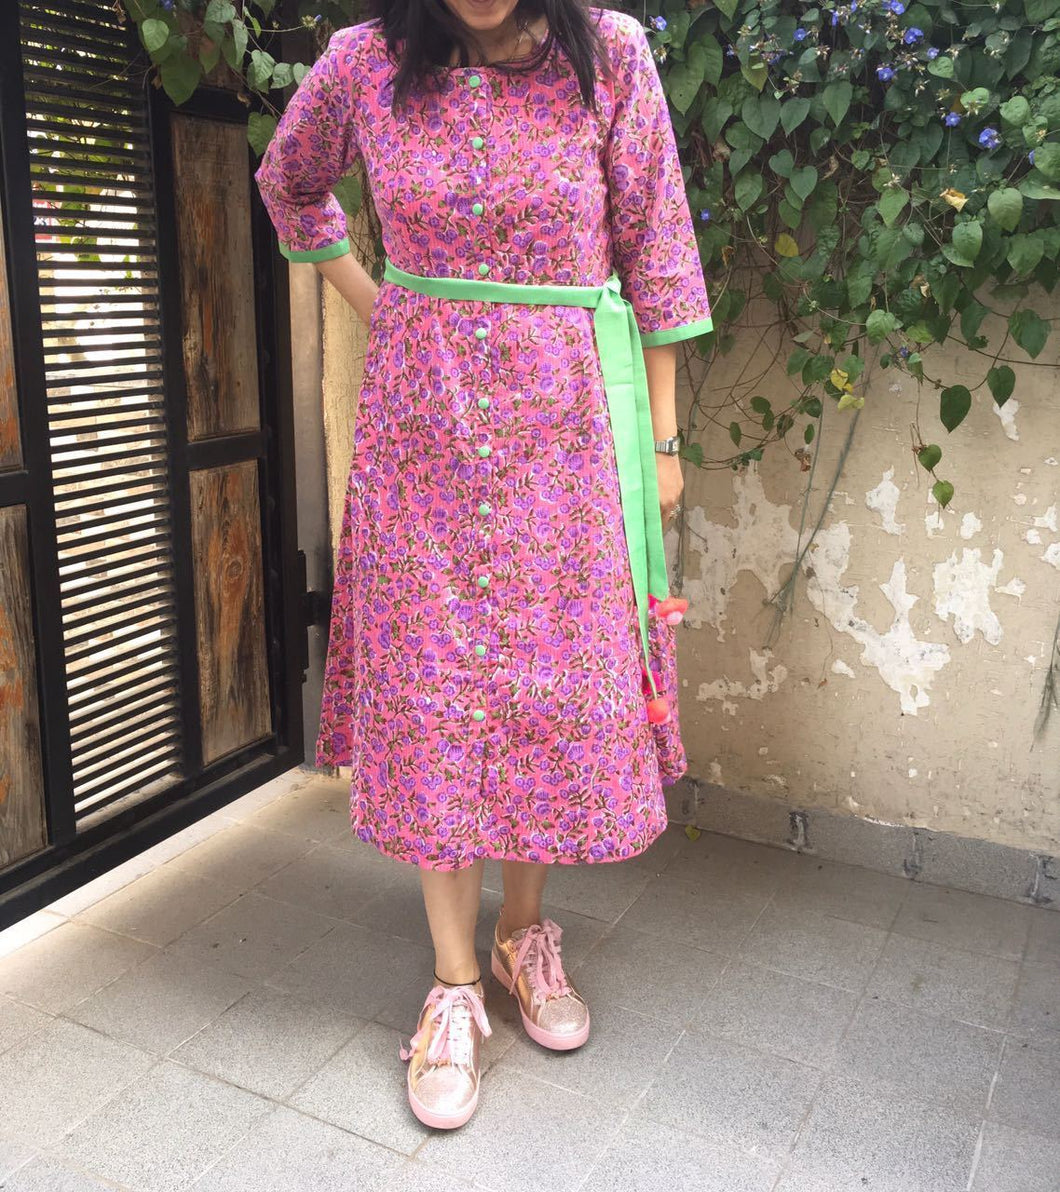 A-Line Pink Floral Printed Dress for Summer